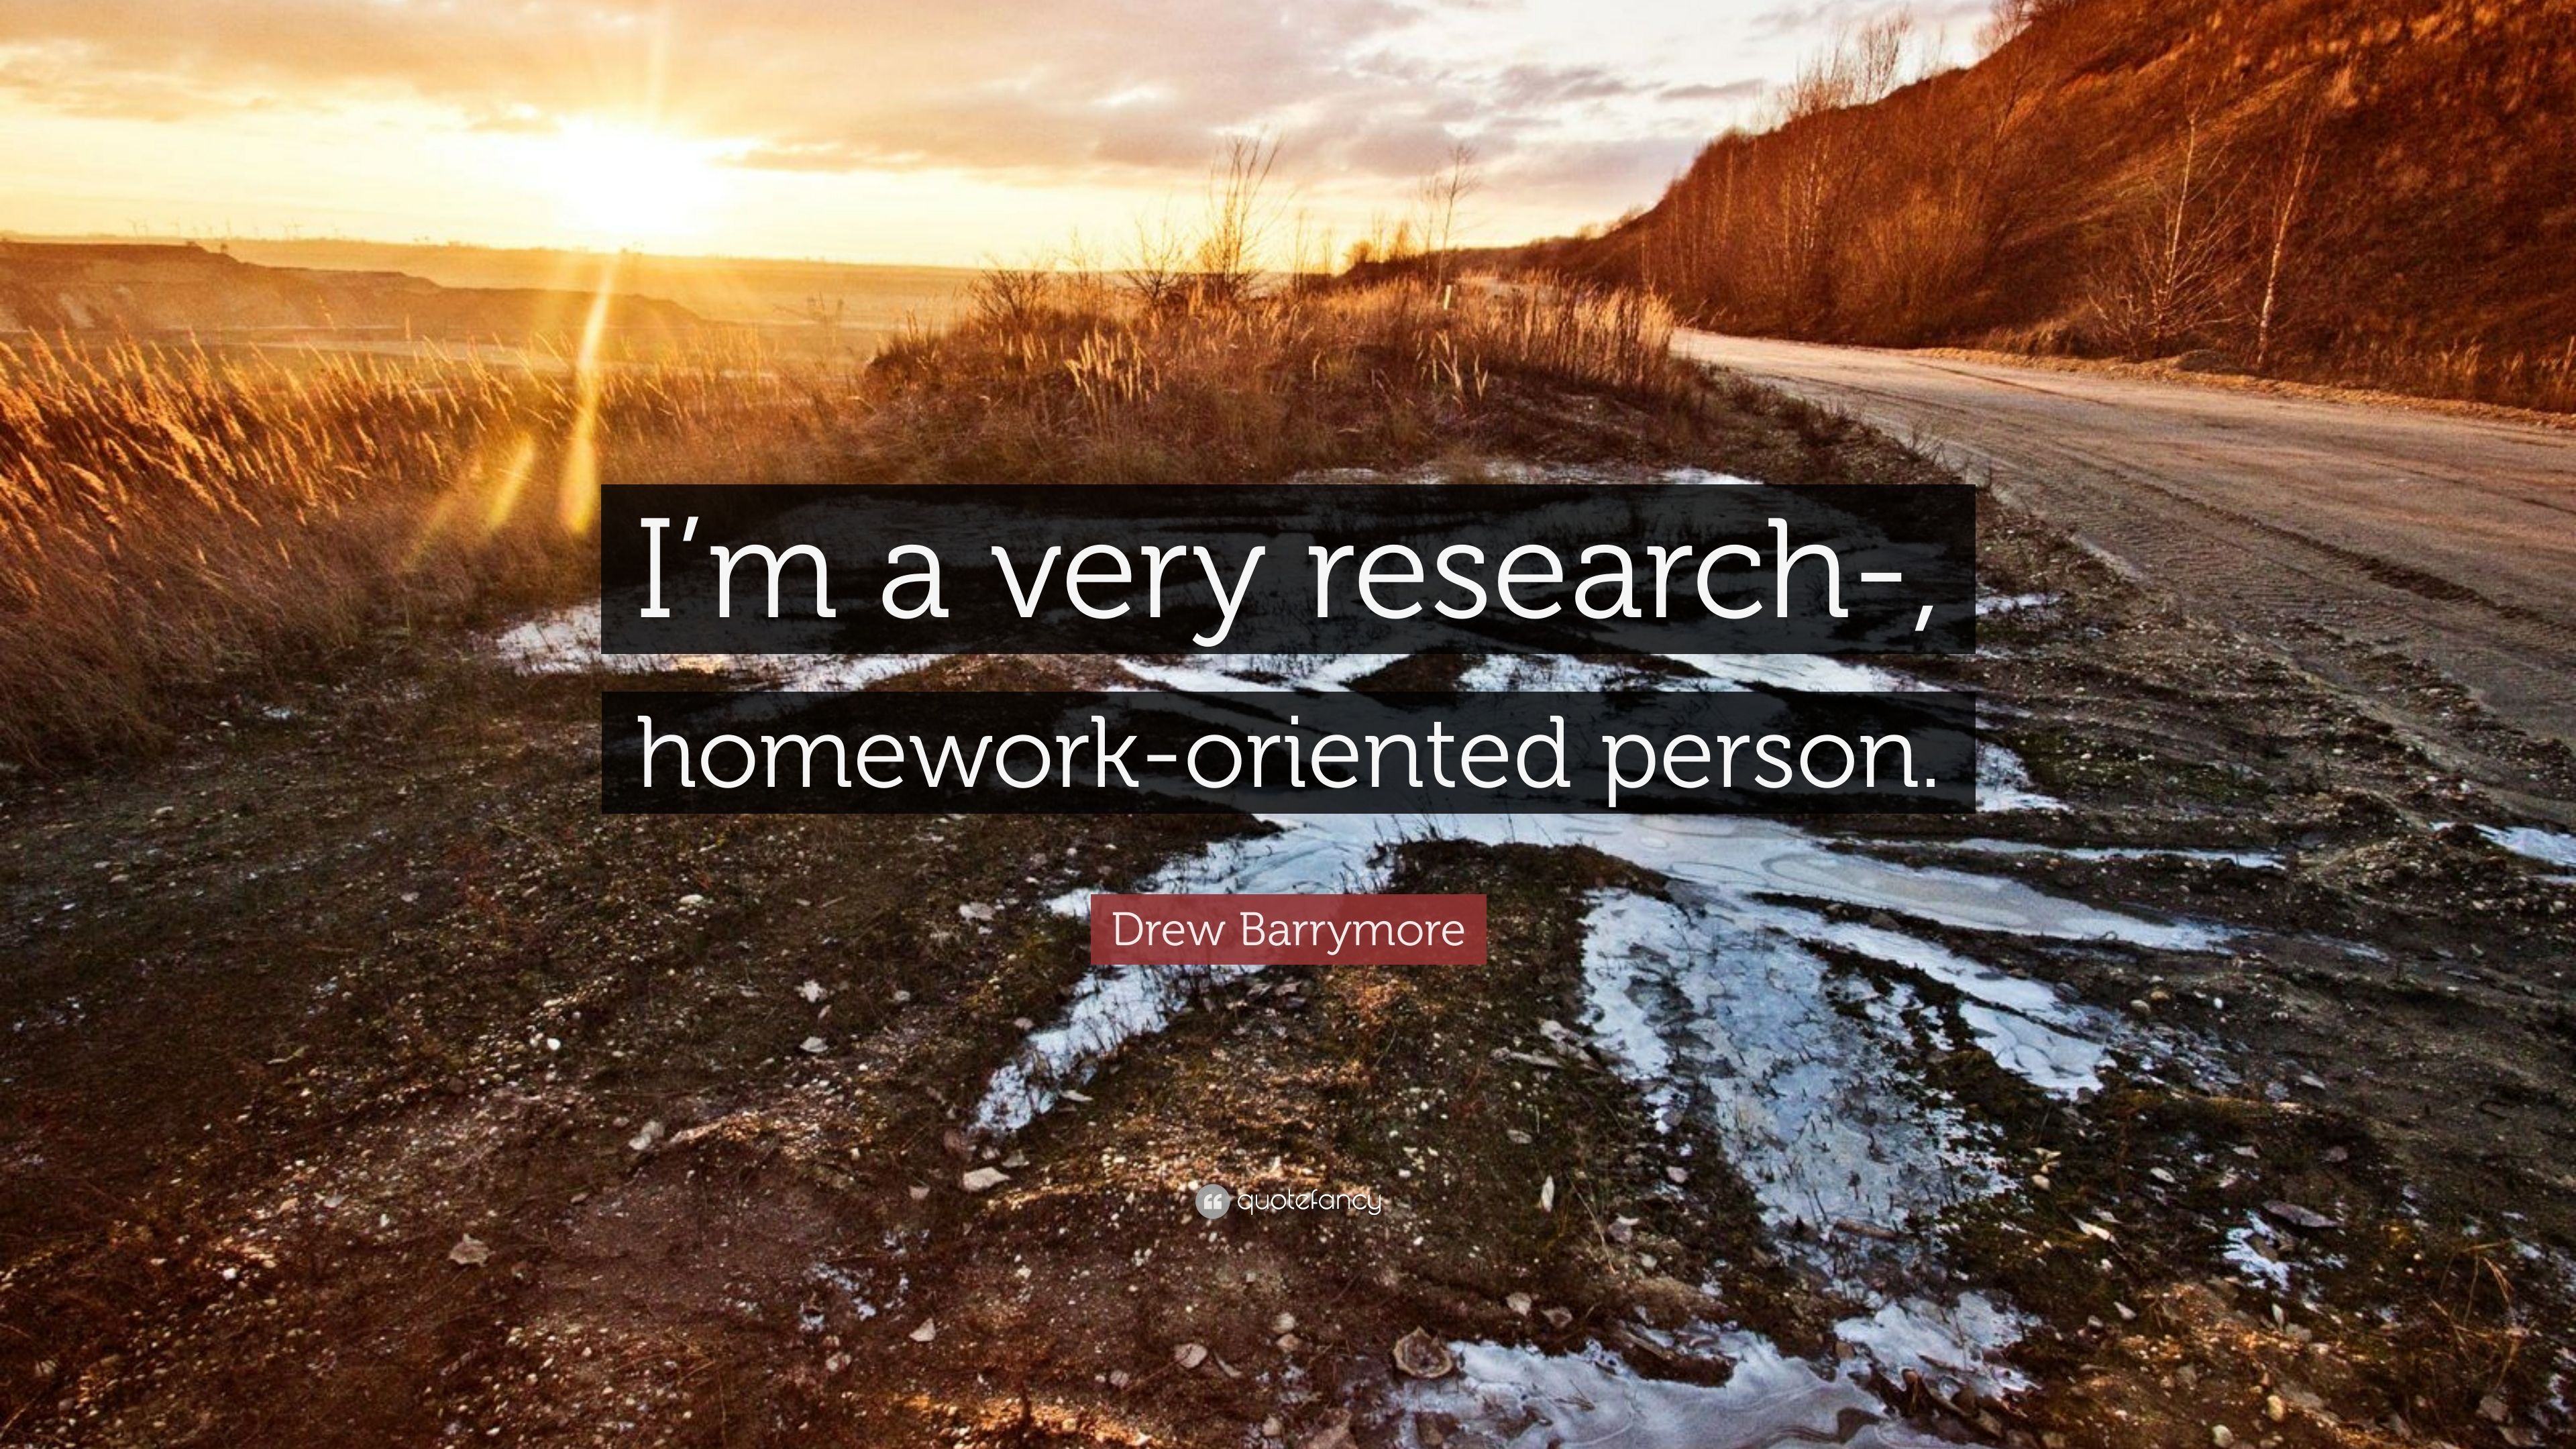 drew barrymore quote i m a very research homework oriented drew barrymore quote i m a very research homework oriented